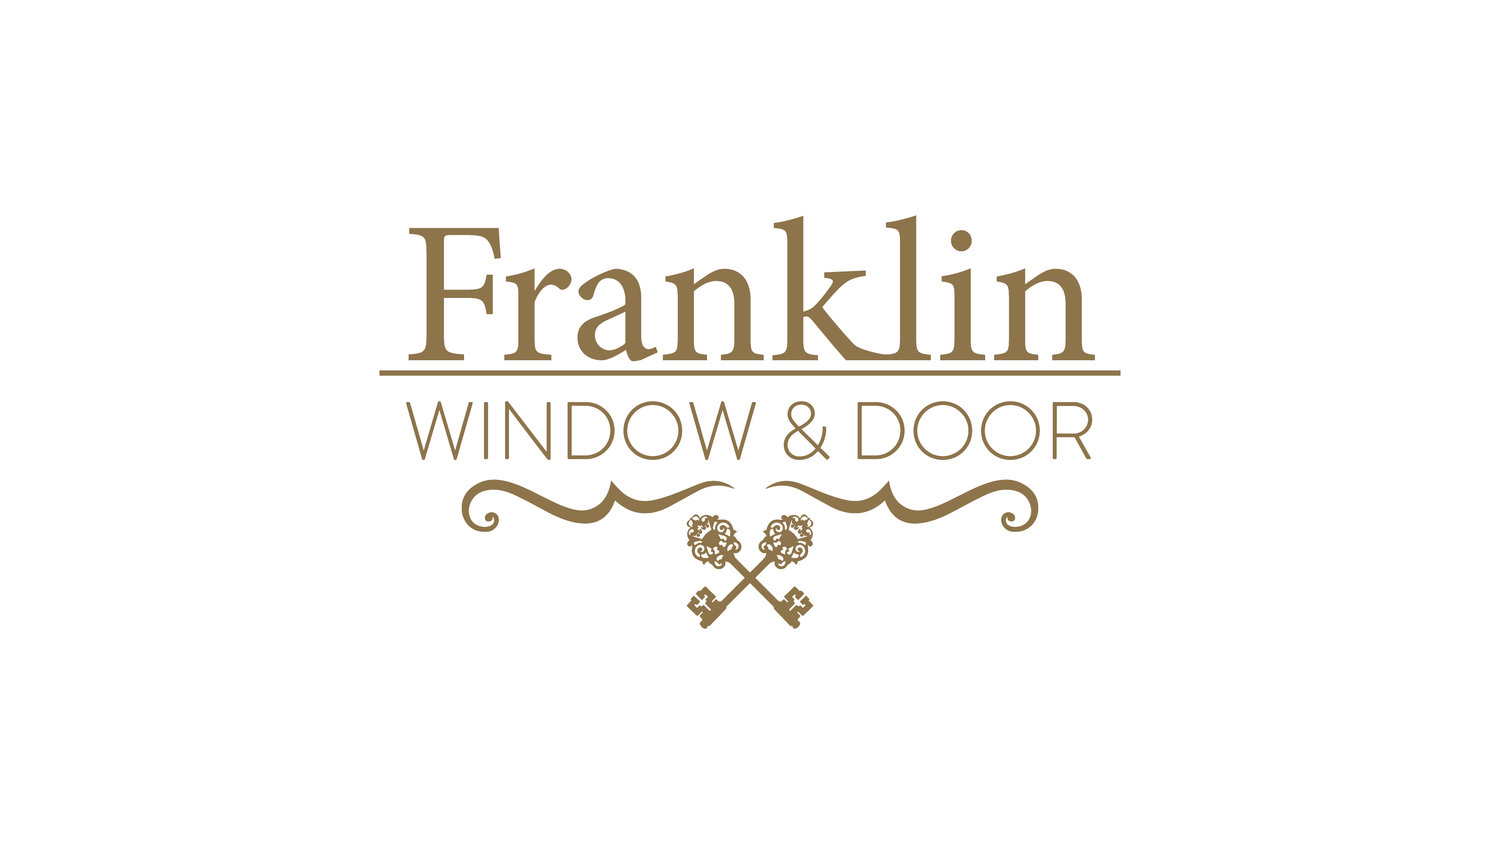 https://www.franklinwindowanddoor.com/ - Location: 1069 3rd Ave SW, Carmel, Indiana 46032 Call: (317)993-3660Hours:Monday - Friday 9:00am - 5:00pm